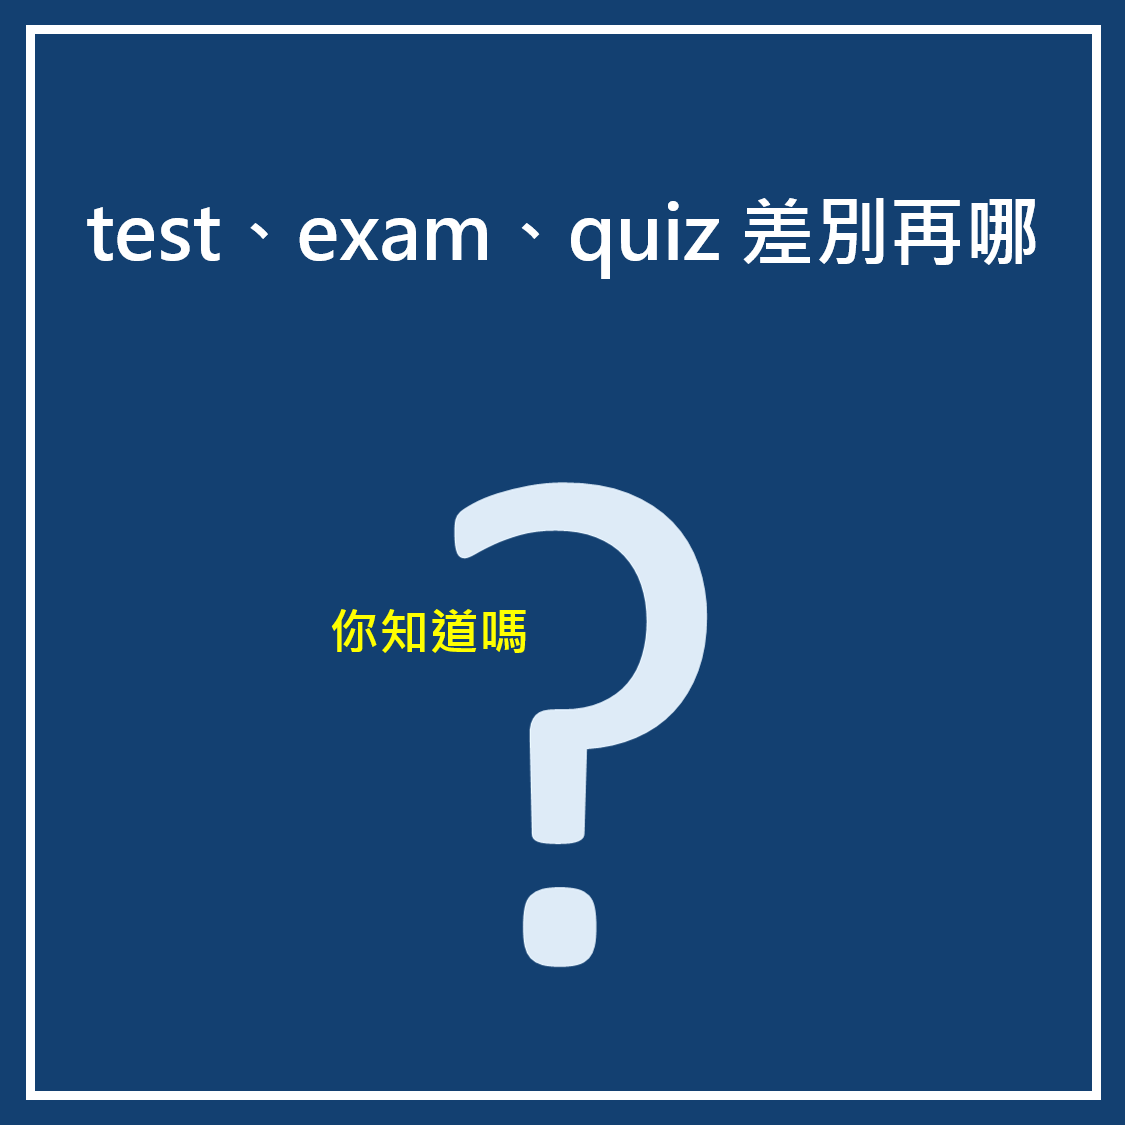 tests, exams, quizzes 差别再哪